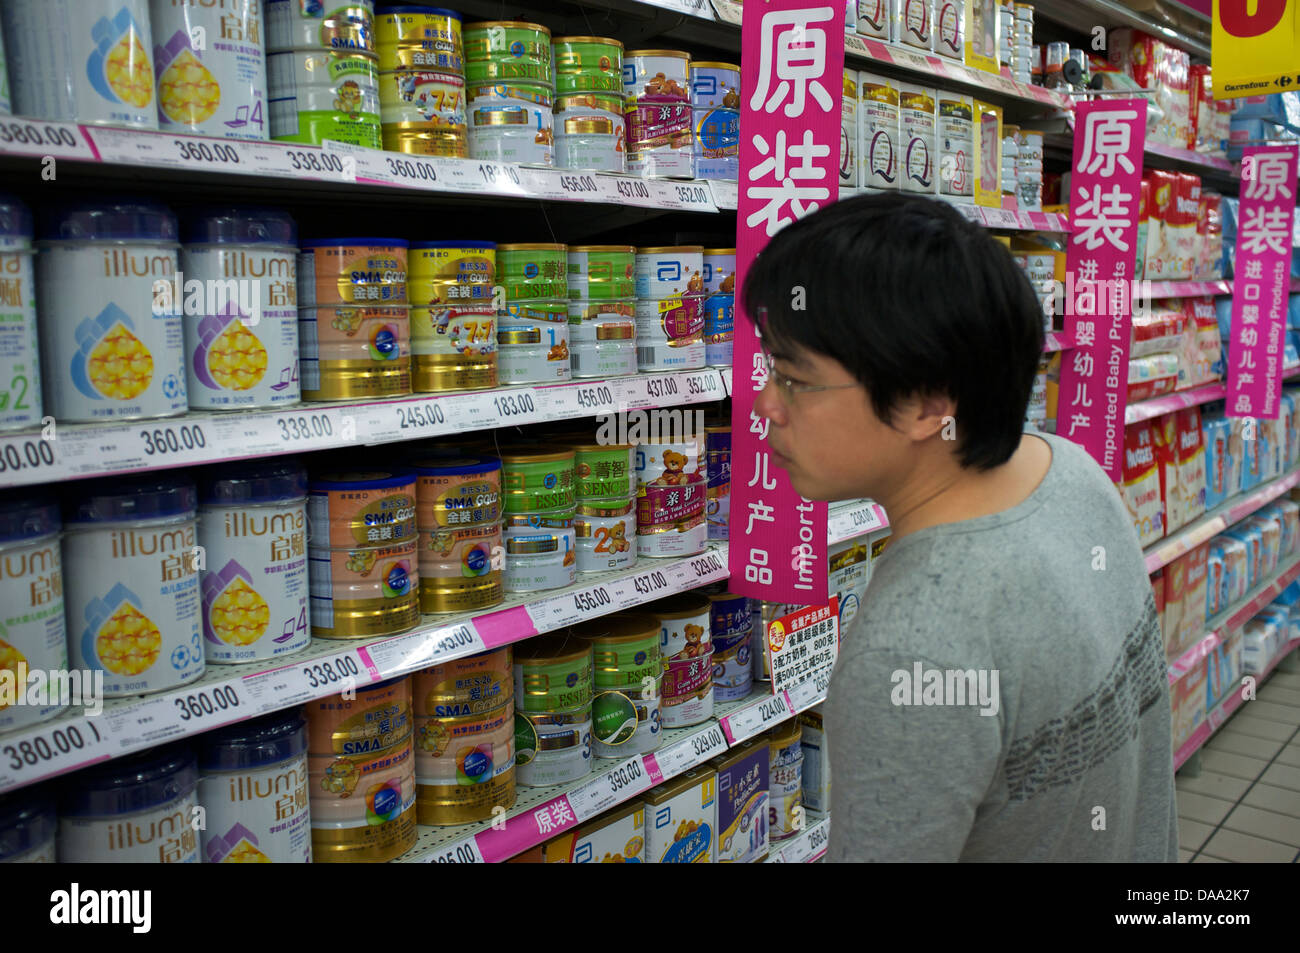 A man looks at imported infant formula baby milk powder in a supermarket in Beijing, China. 09-Jul-2013 Stock Photo